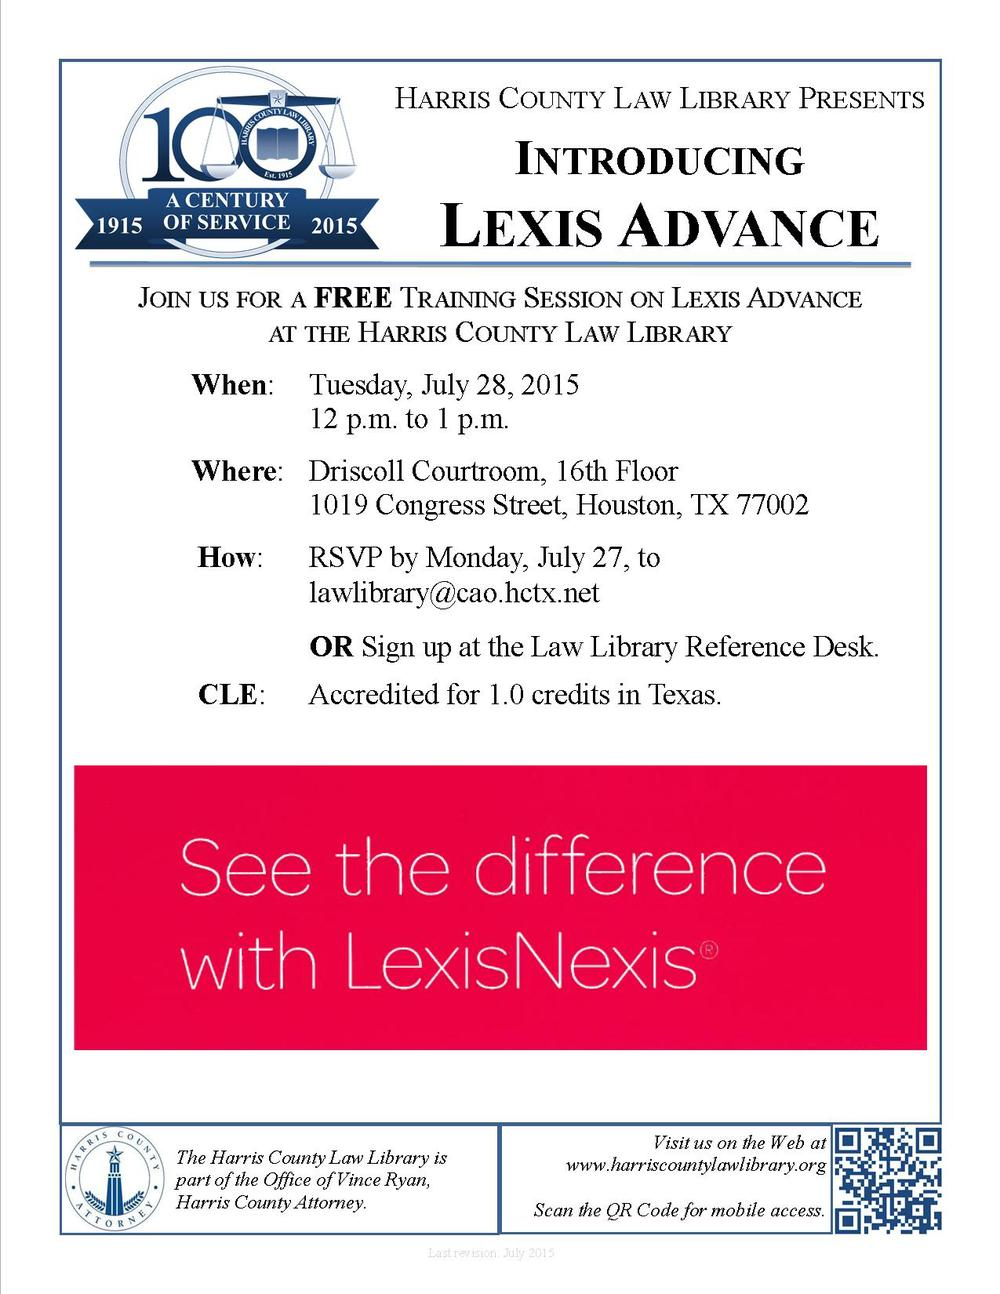 Flyer for Lexis Advance CLE at Harris County Law Library